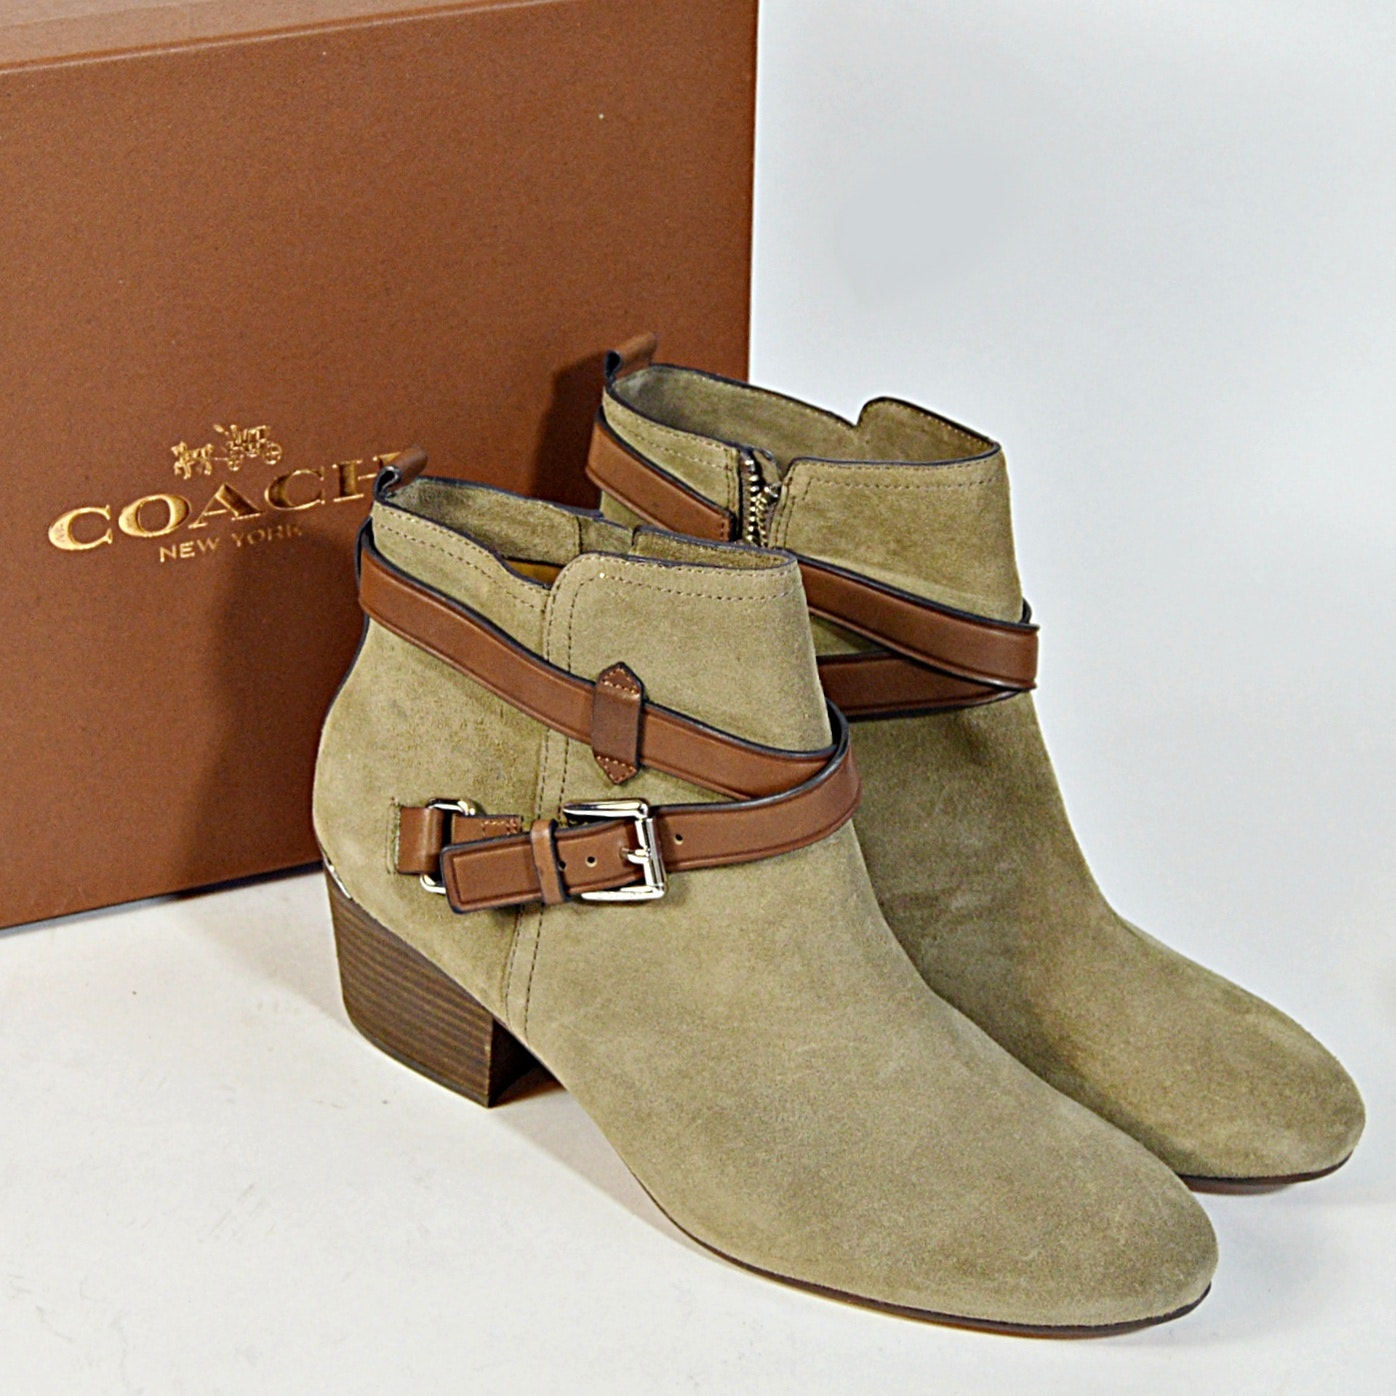 Coach Tan Suede Pauline Ankle Boots, 9B